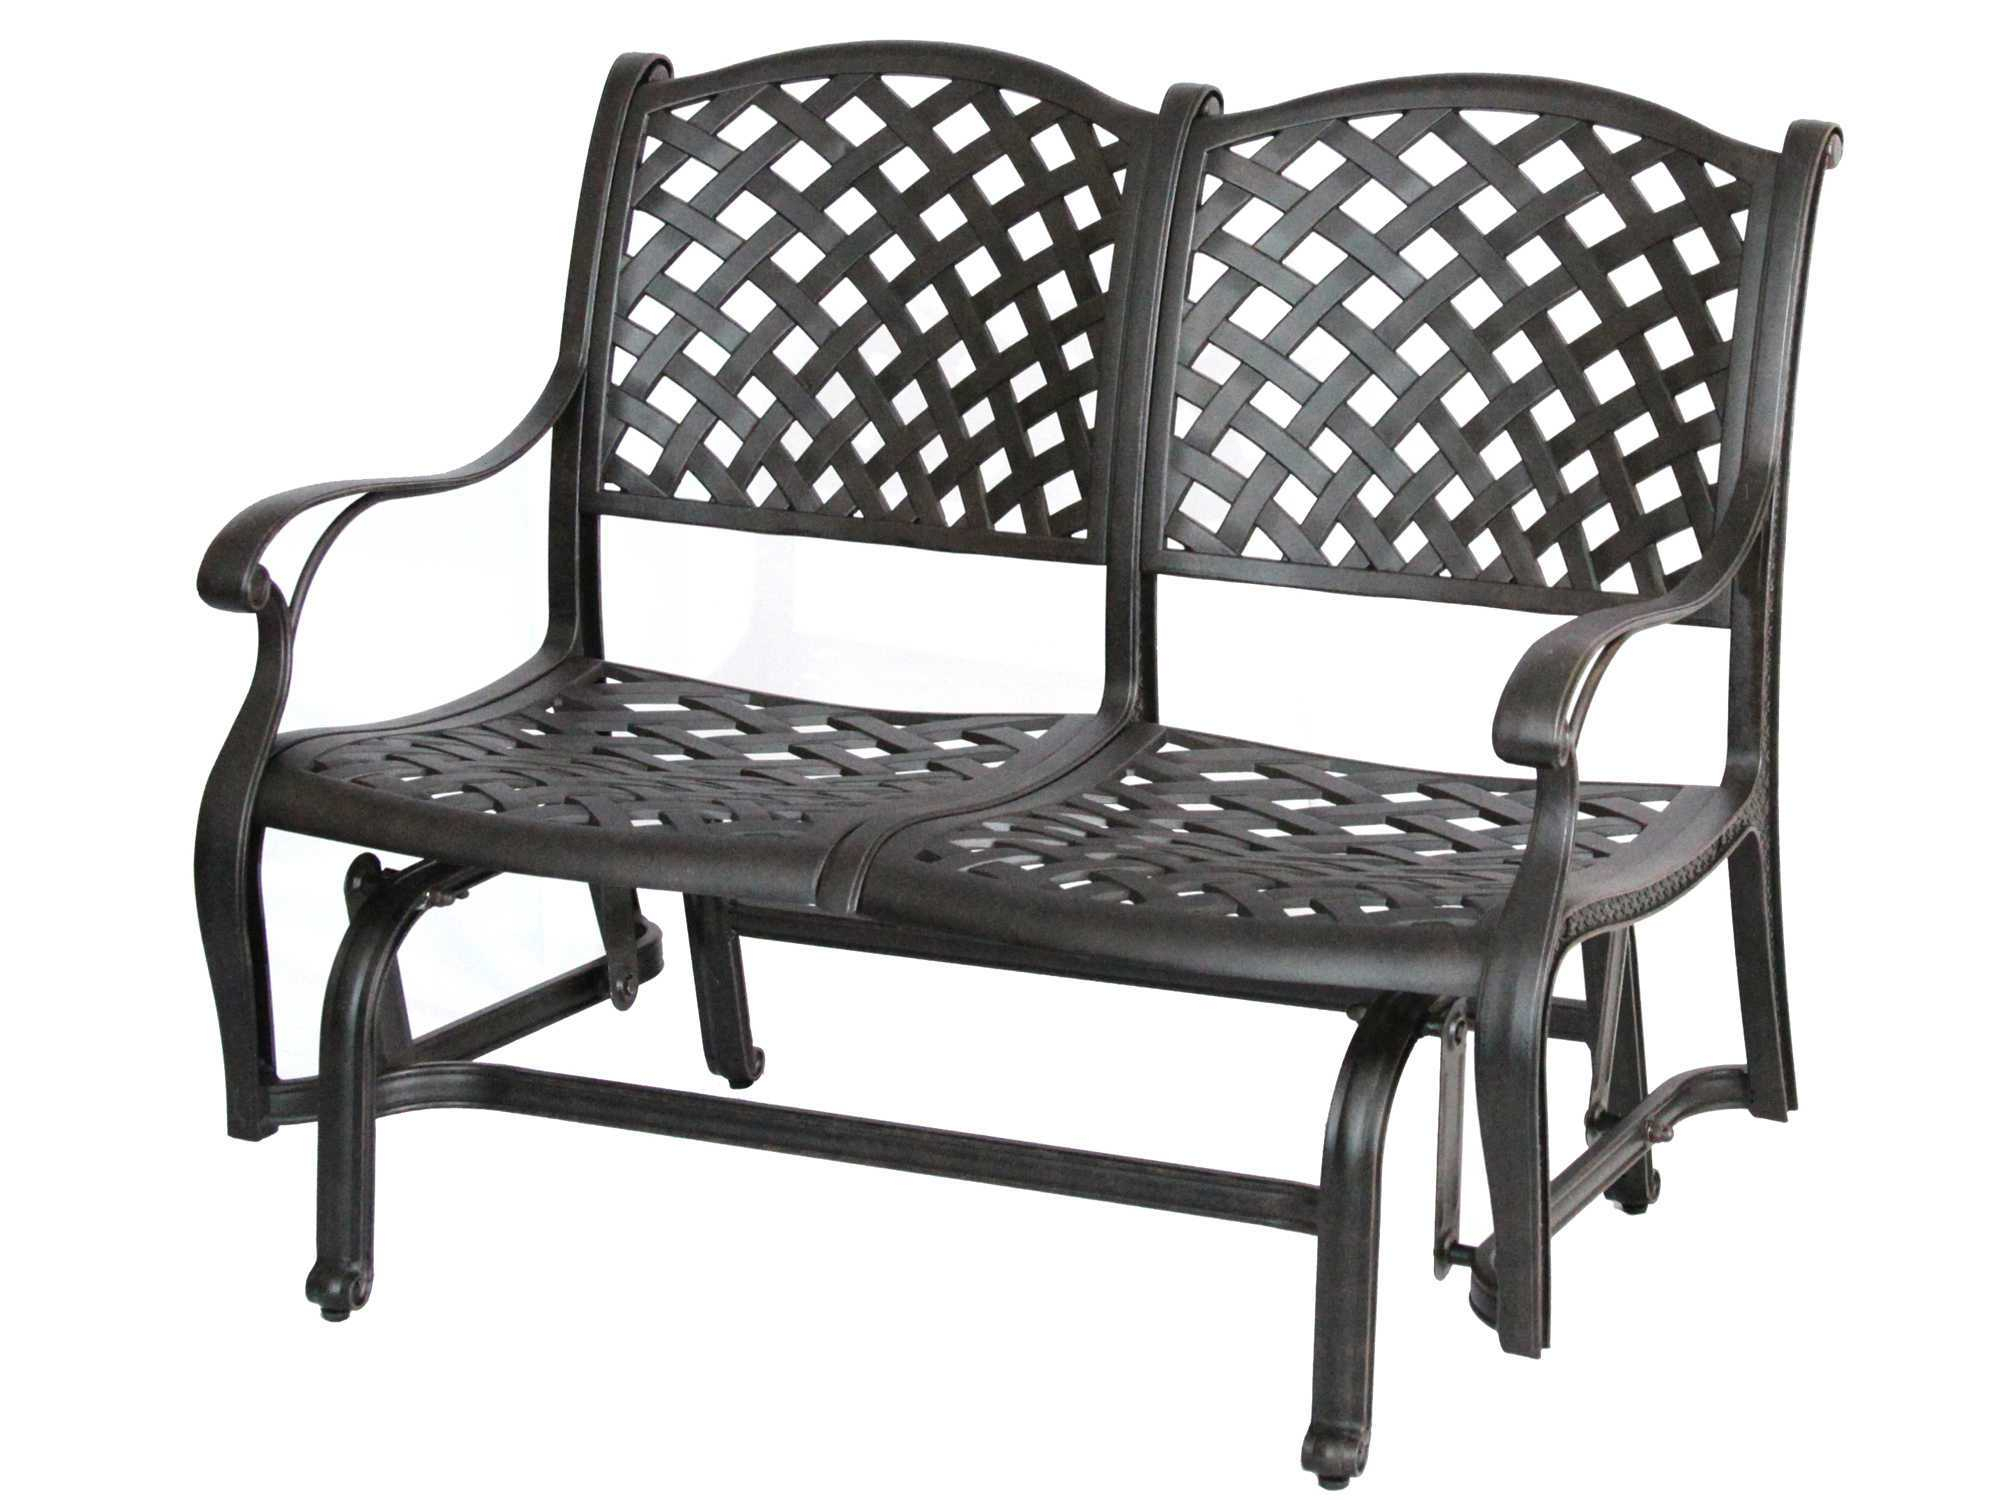 Darlee Outdoor Living Standard Nassau Cast Aluminum Antique Within Glider Benches With Cushions (View 23 of 25)